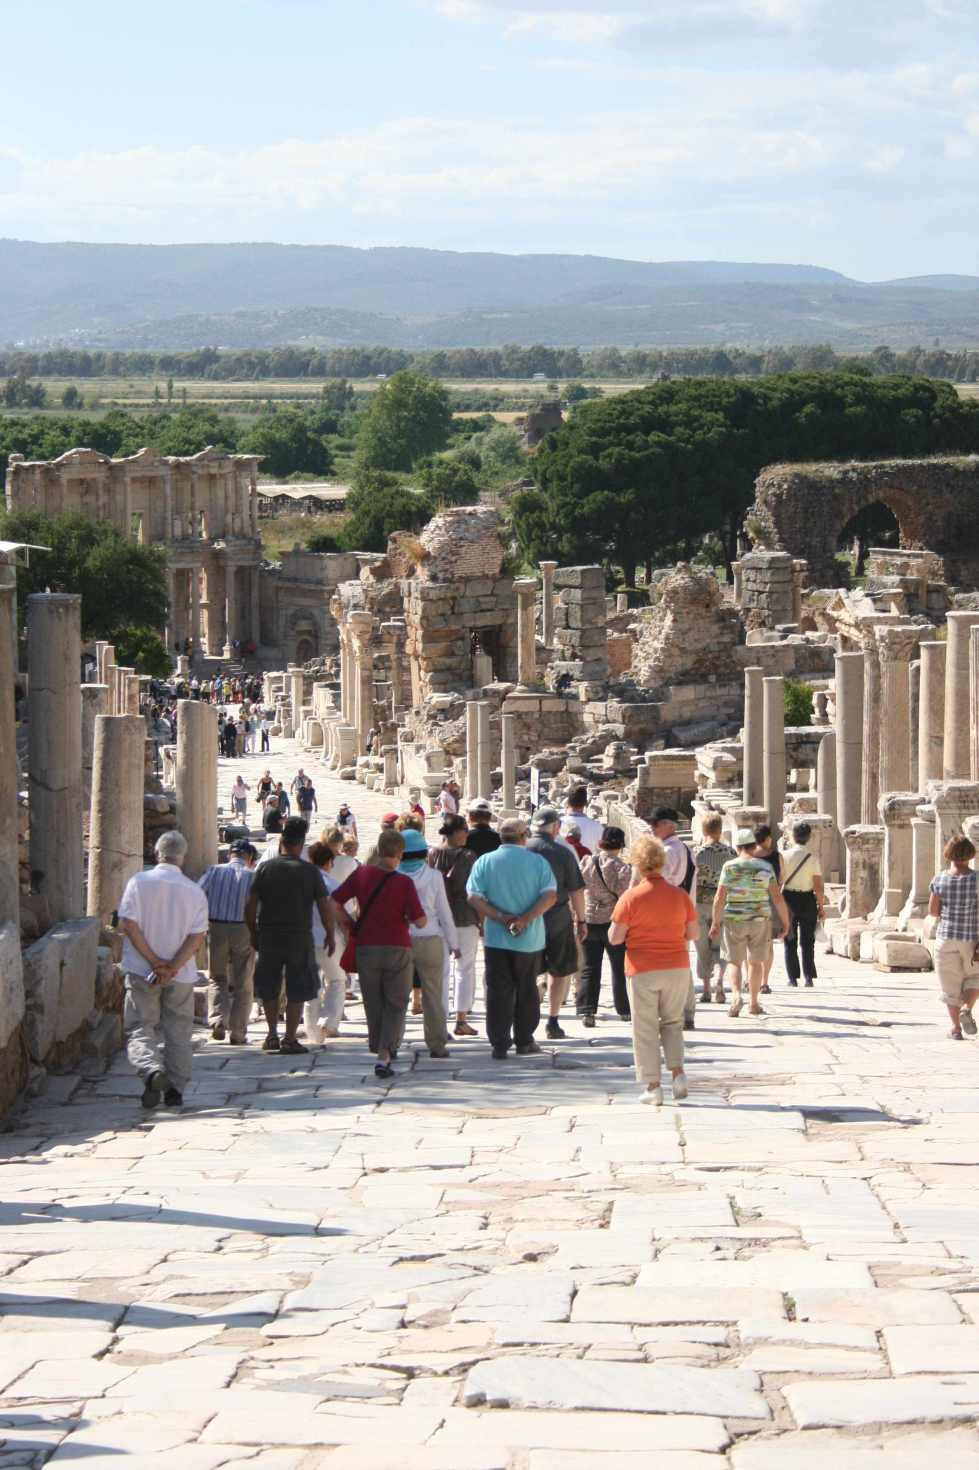 Ephesus Ruins, Ephesus, Turkey, travel photos, Ancient City of Ephesus